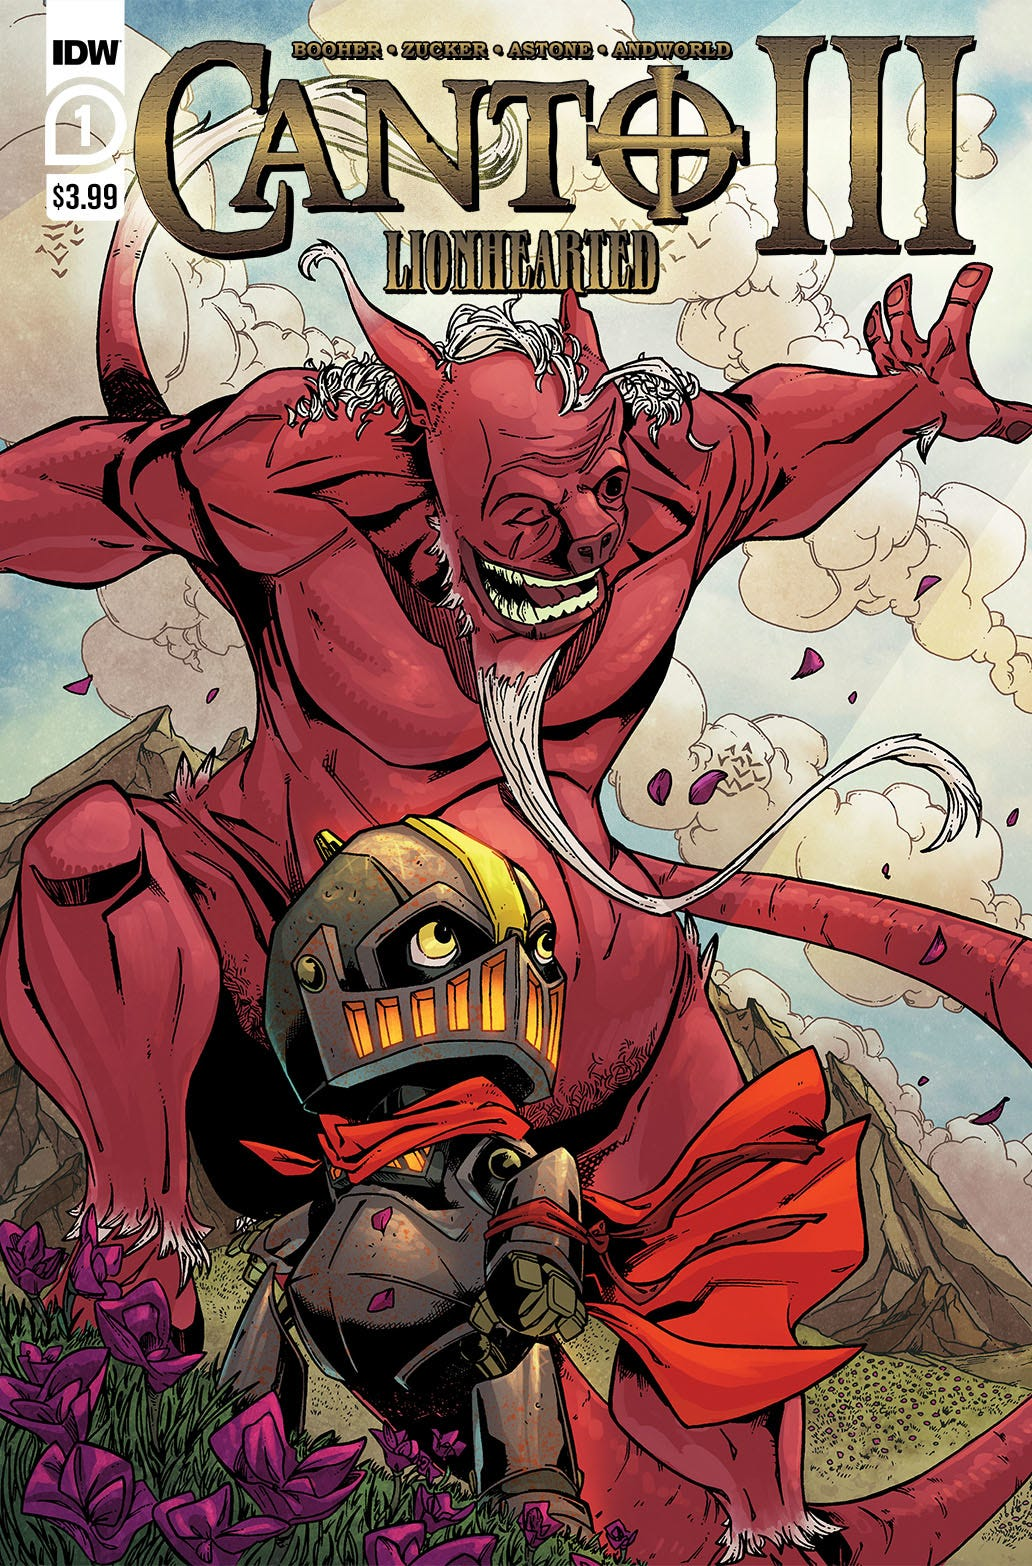 Canto III Lionhearted #1 (of 6) (Cover A - Drew Zucker)